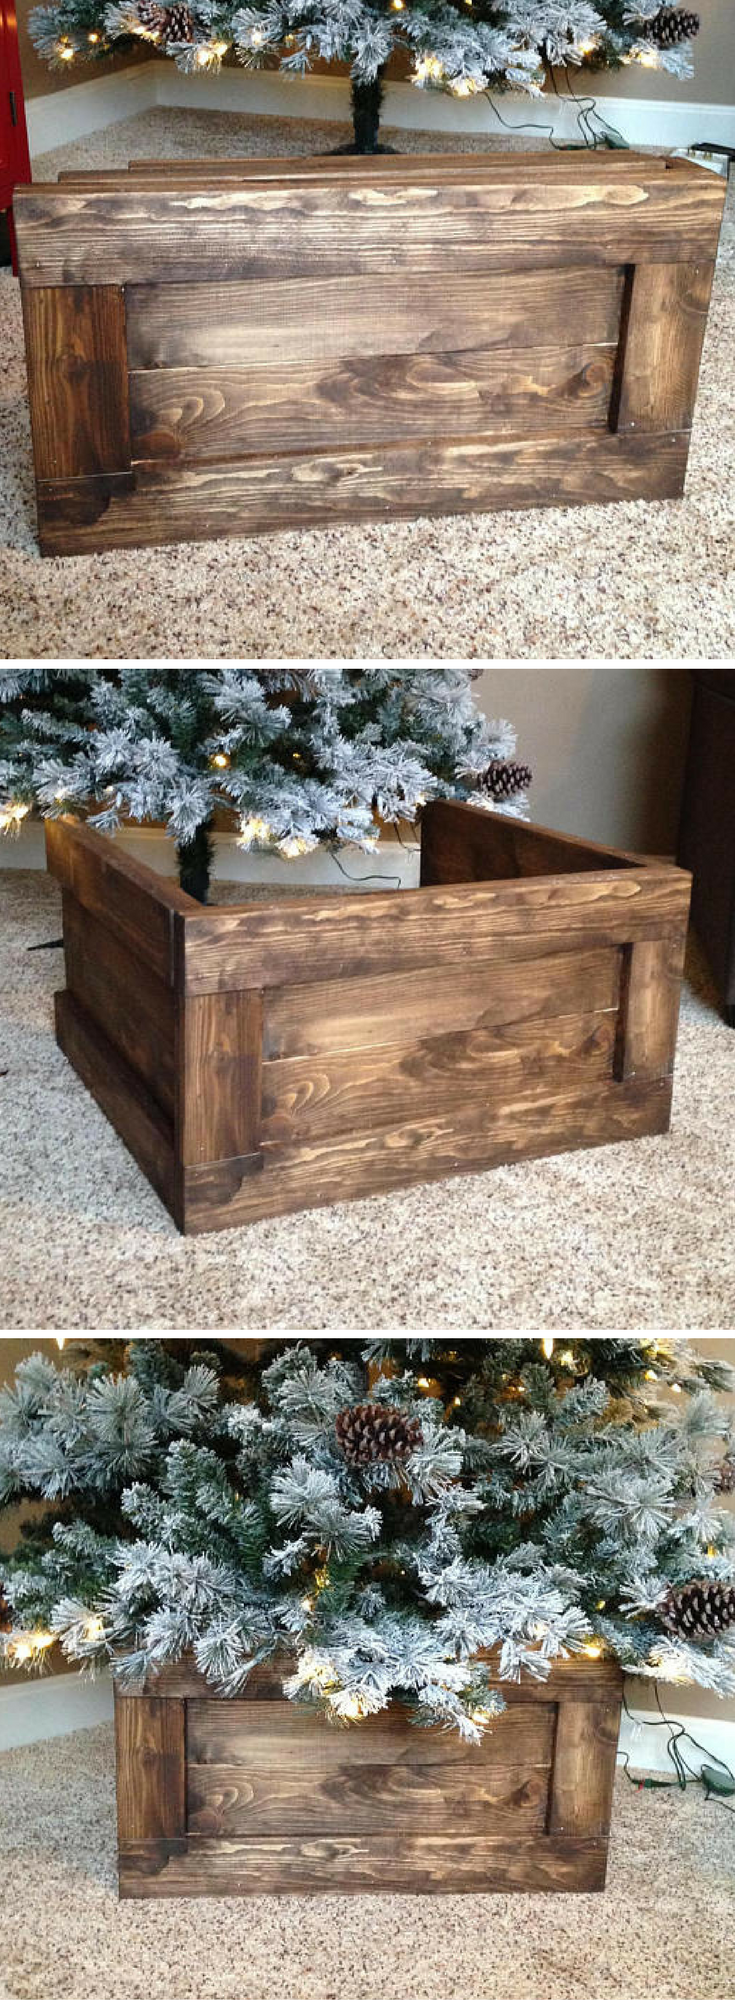 I Want Folding Christmas Tree Wood Box Stand Christmasdecor Farmhousedecor Ad Christmas Tree Box Christmas Decorations Rustic Diy Christmas Tree Skirt